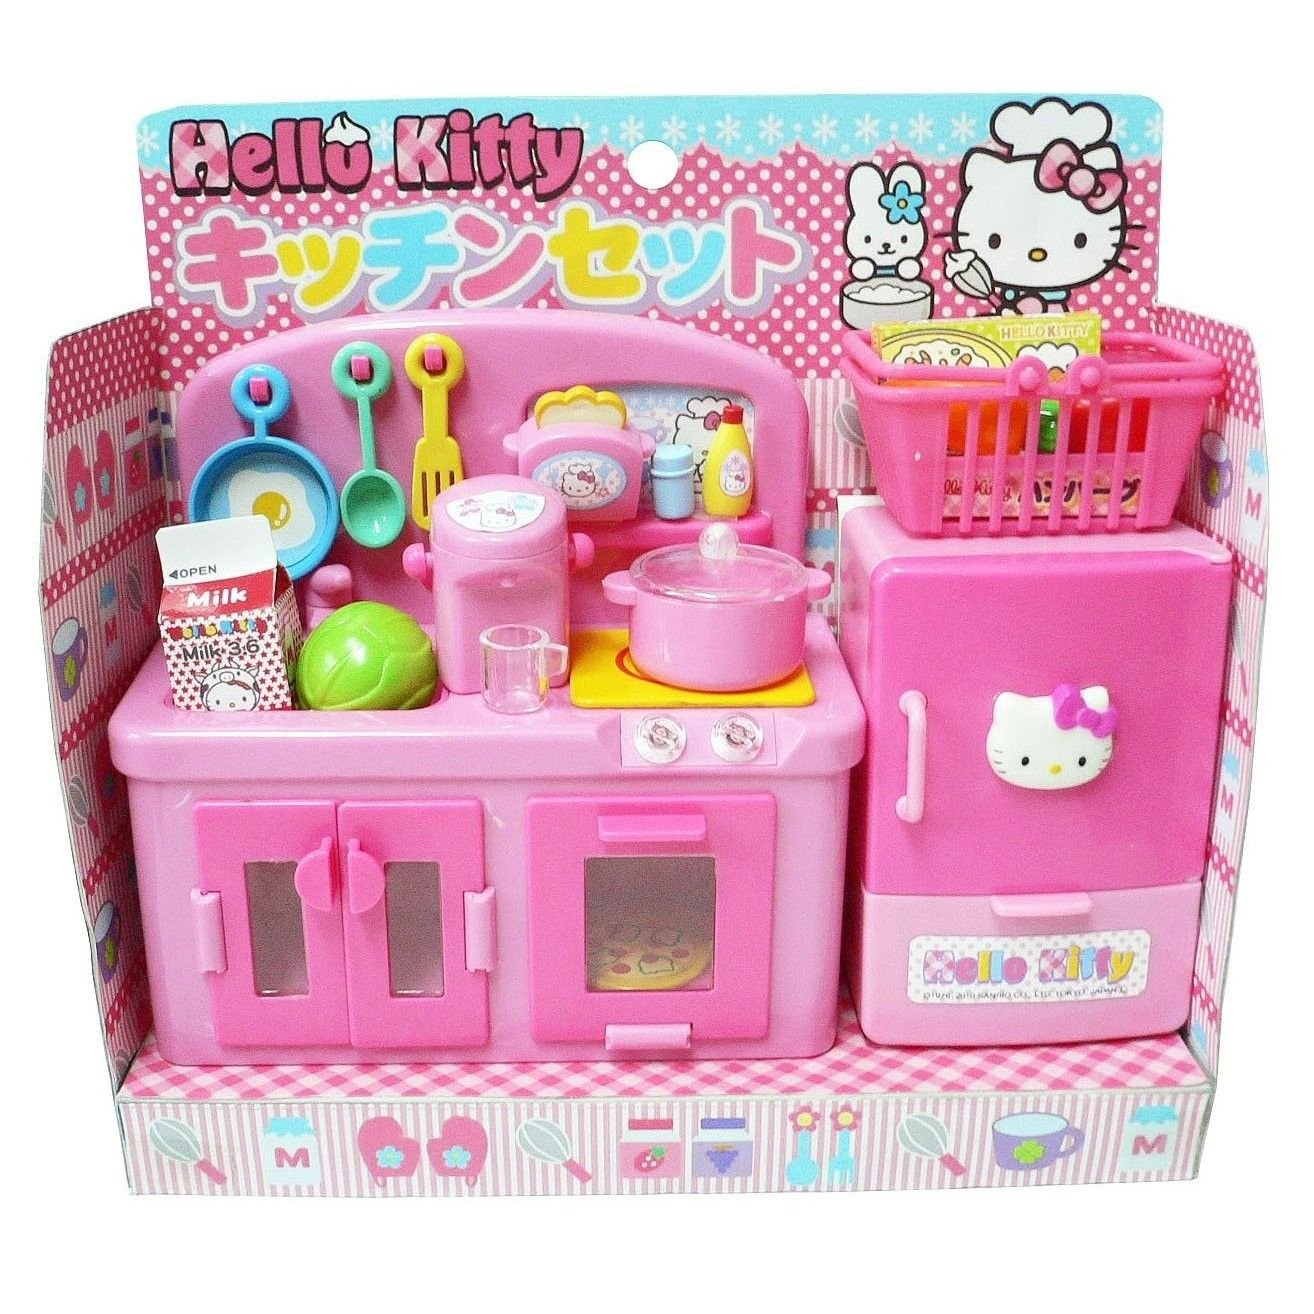 Hello Kitty Kitchen and Refrigerator Sets Sold Together - Everything Needed for Cooking Play by Hello Kitty (Image #3)